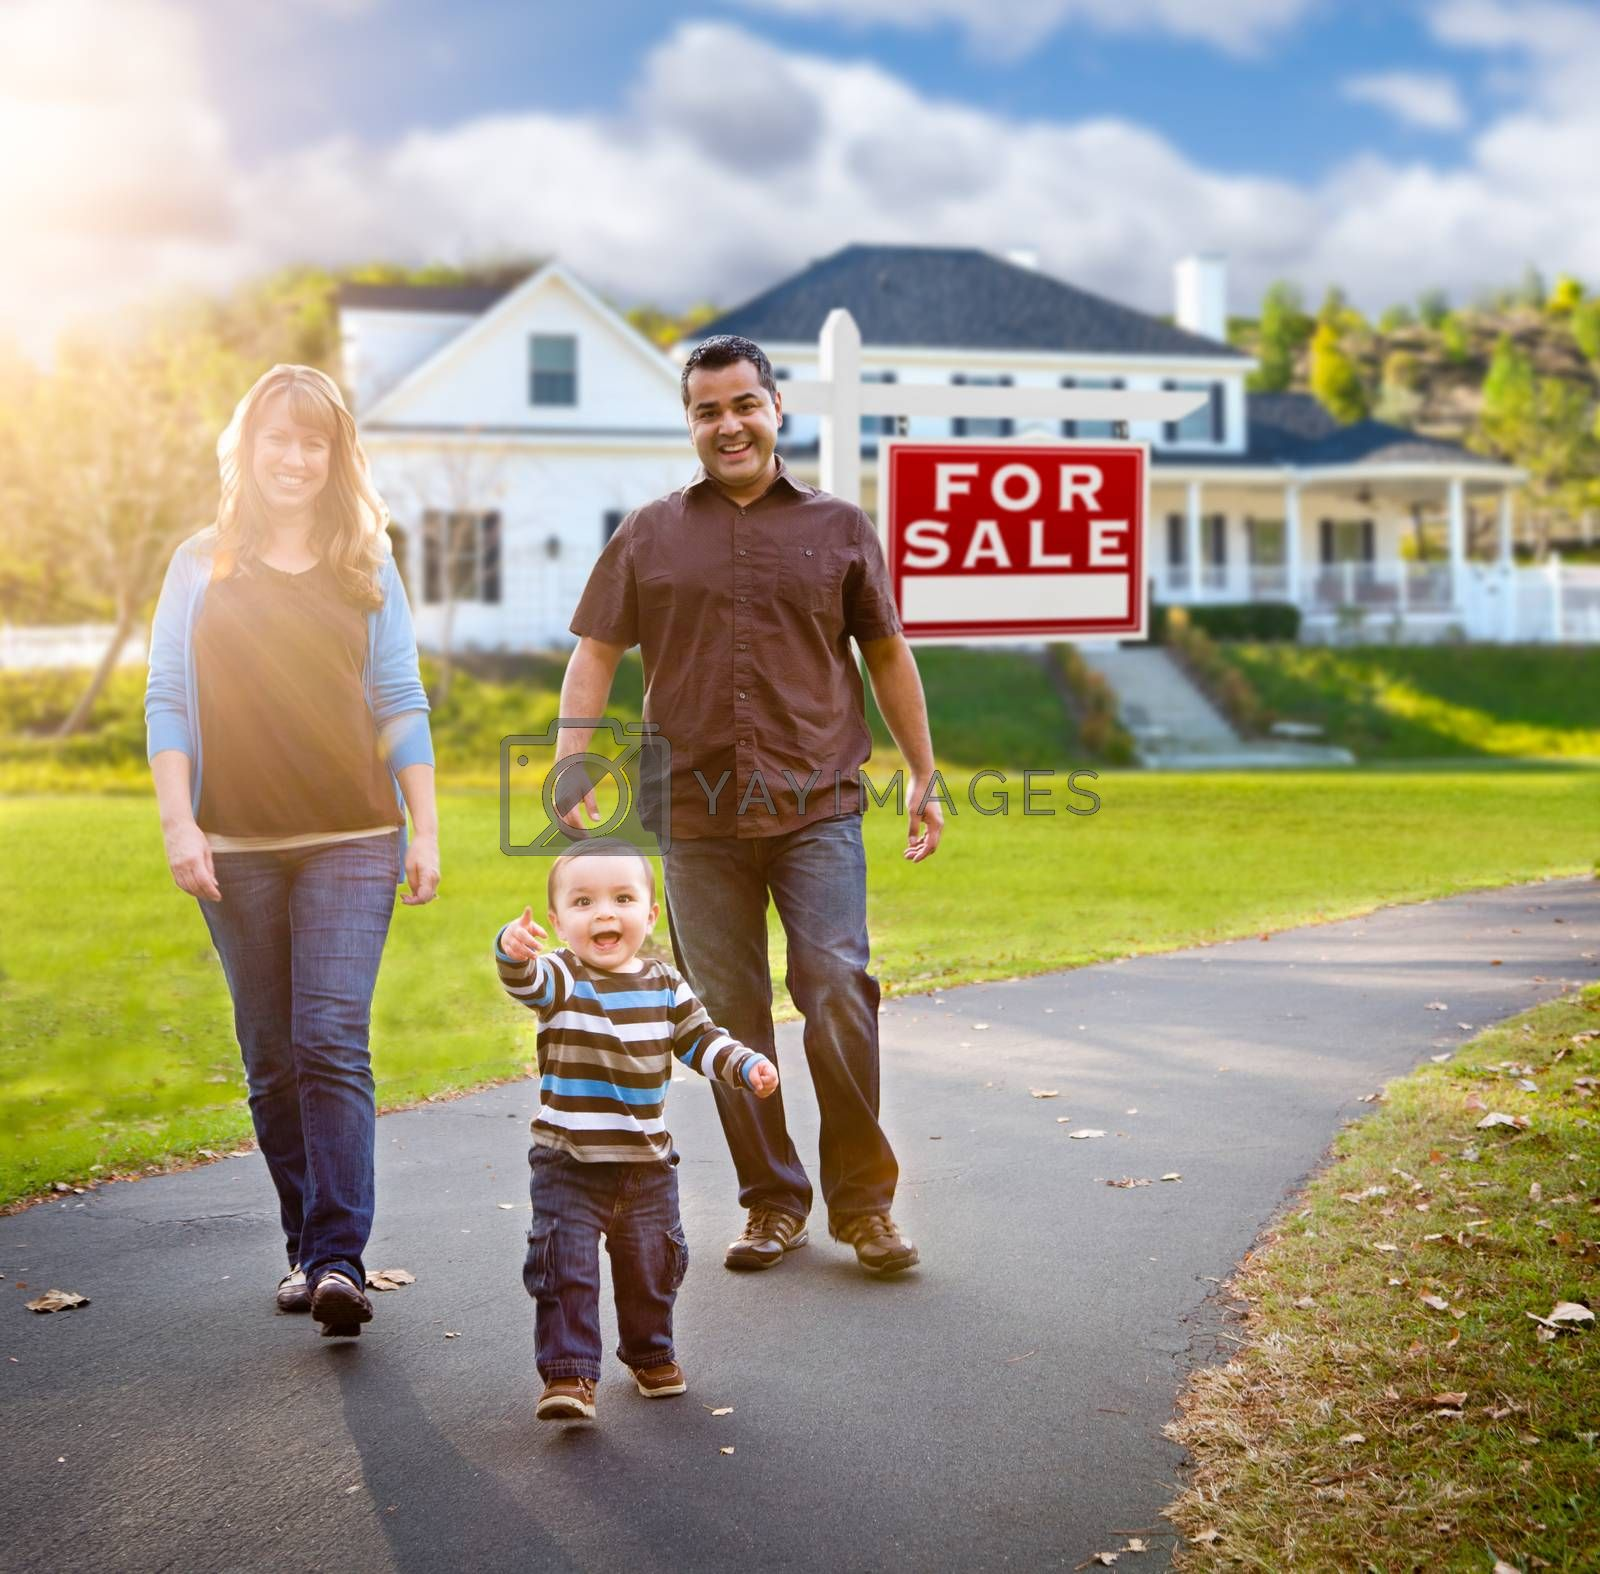 Happy Mixed Race Family Walking in Front of Home and For Sale Real Estate Sign.